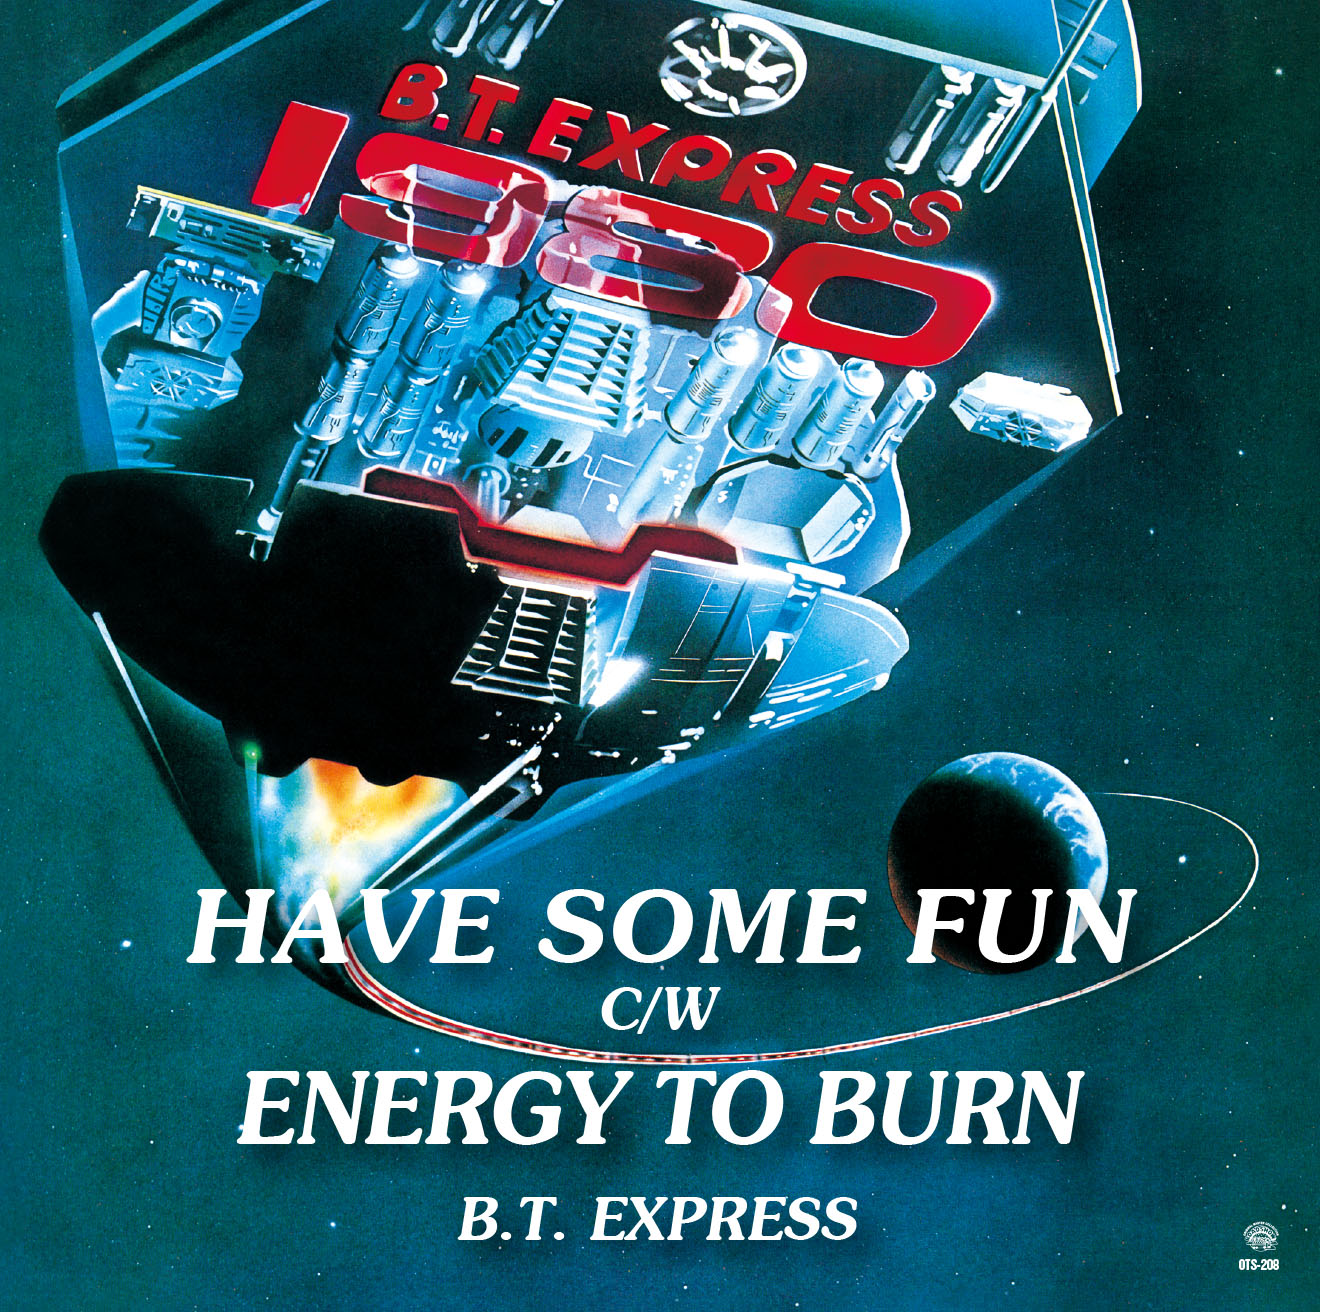 08-002 B.T. Express Have Some Fun / Energy To Burn